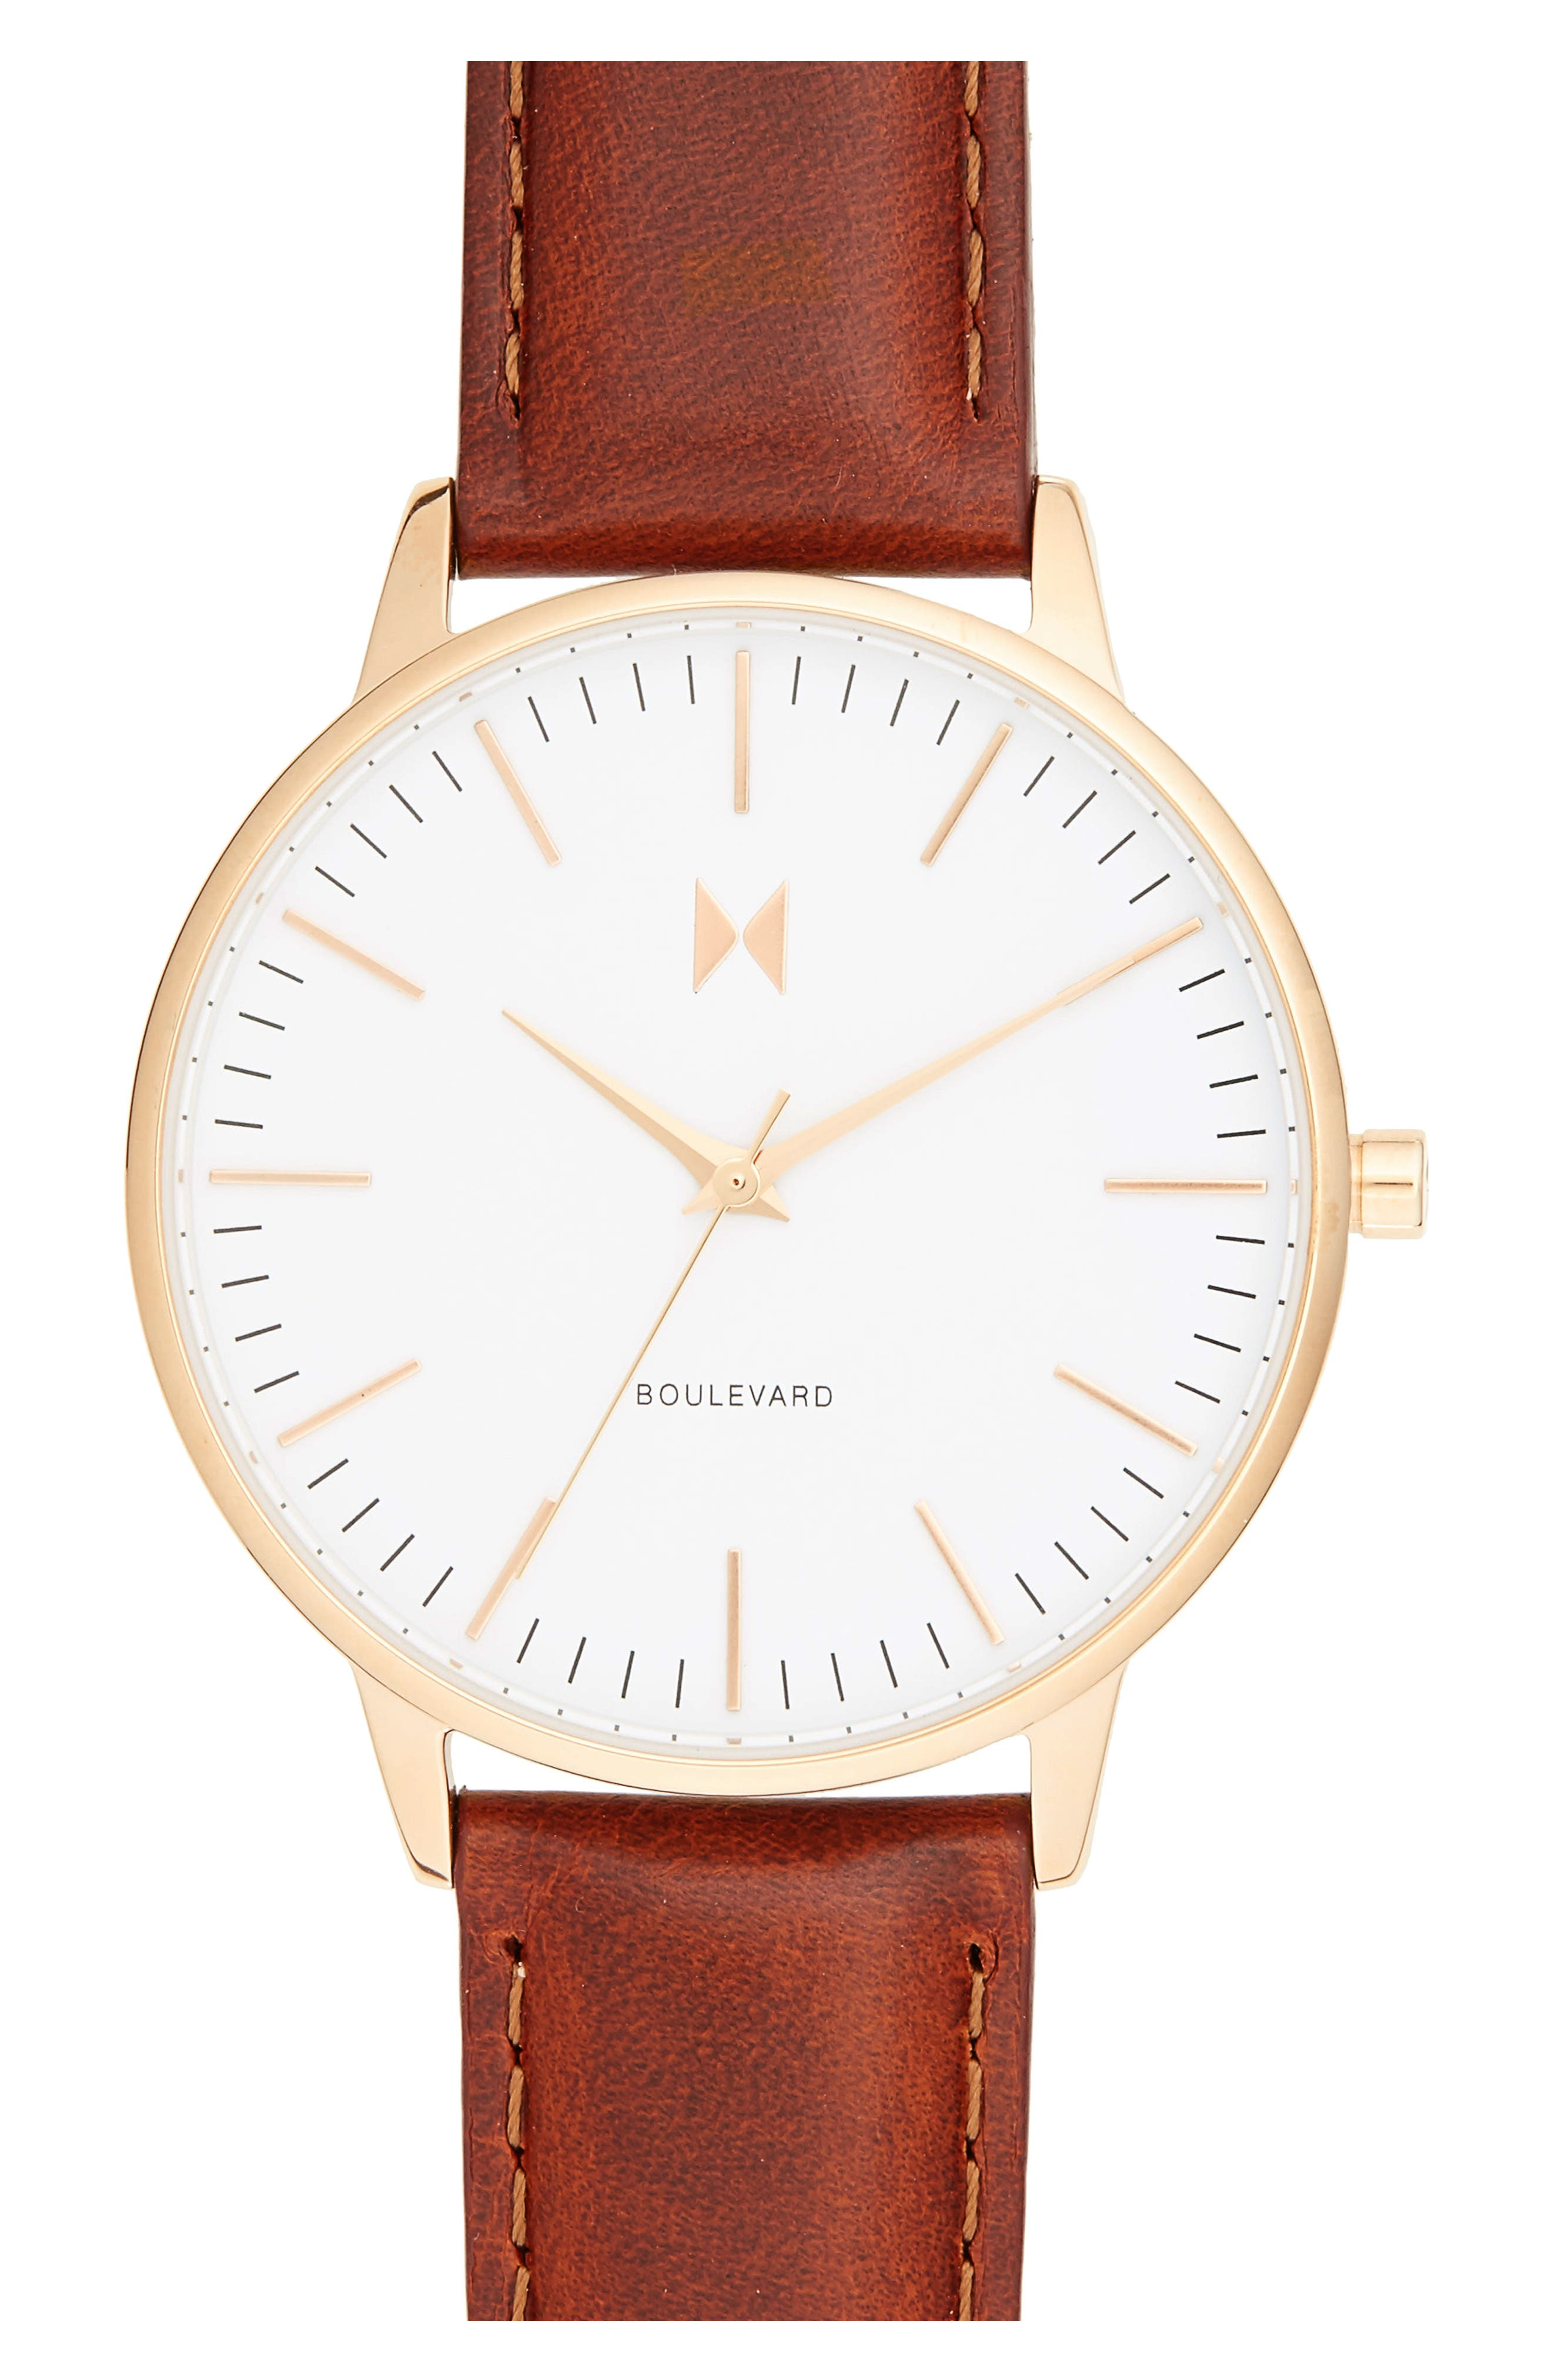 Boulevard Leather Strap Watch, 38mm,                             Main thumbnail 1, color,                             BROWN/ WHITE/ GOLD